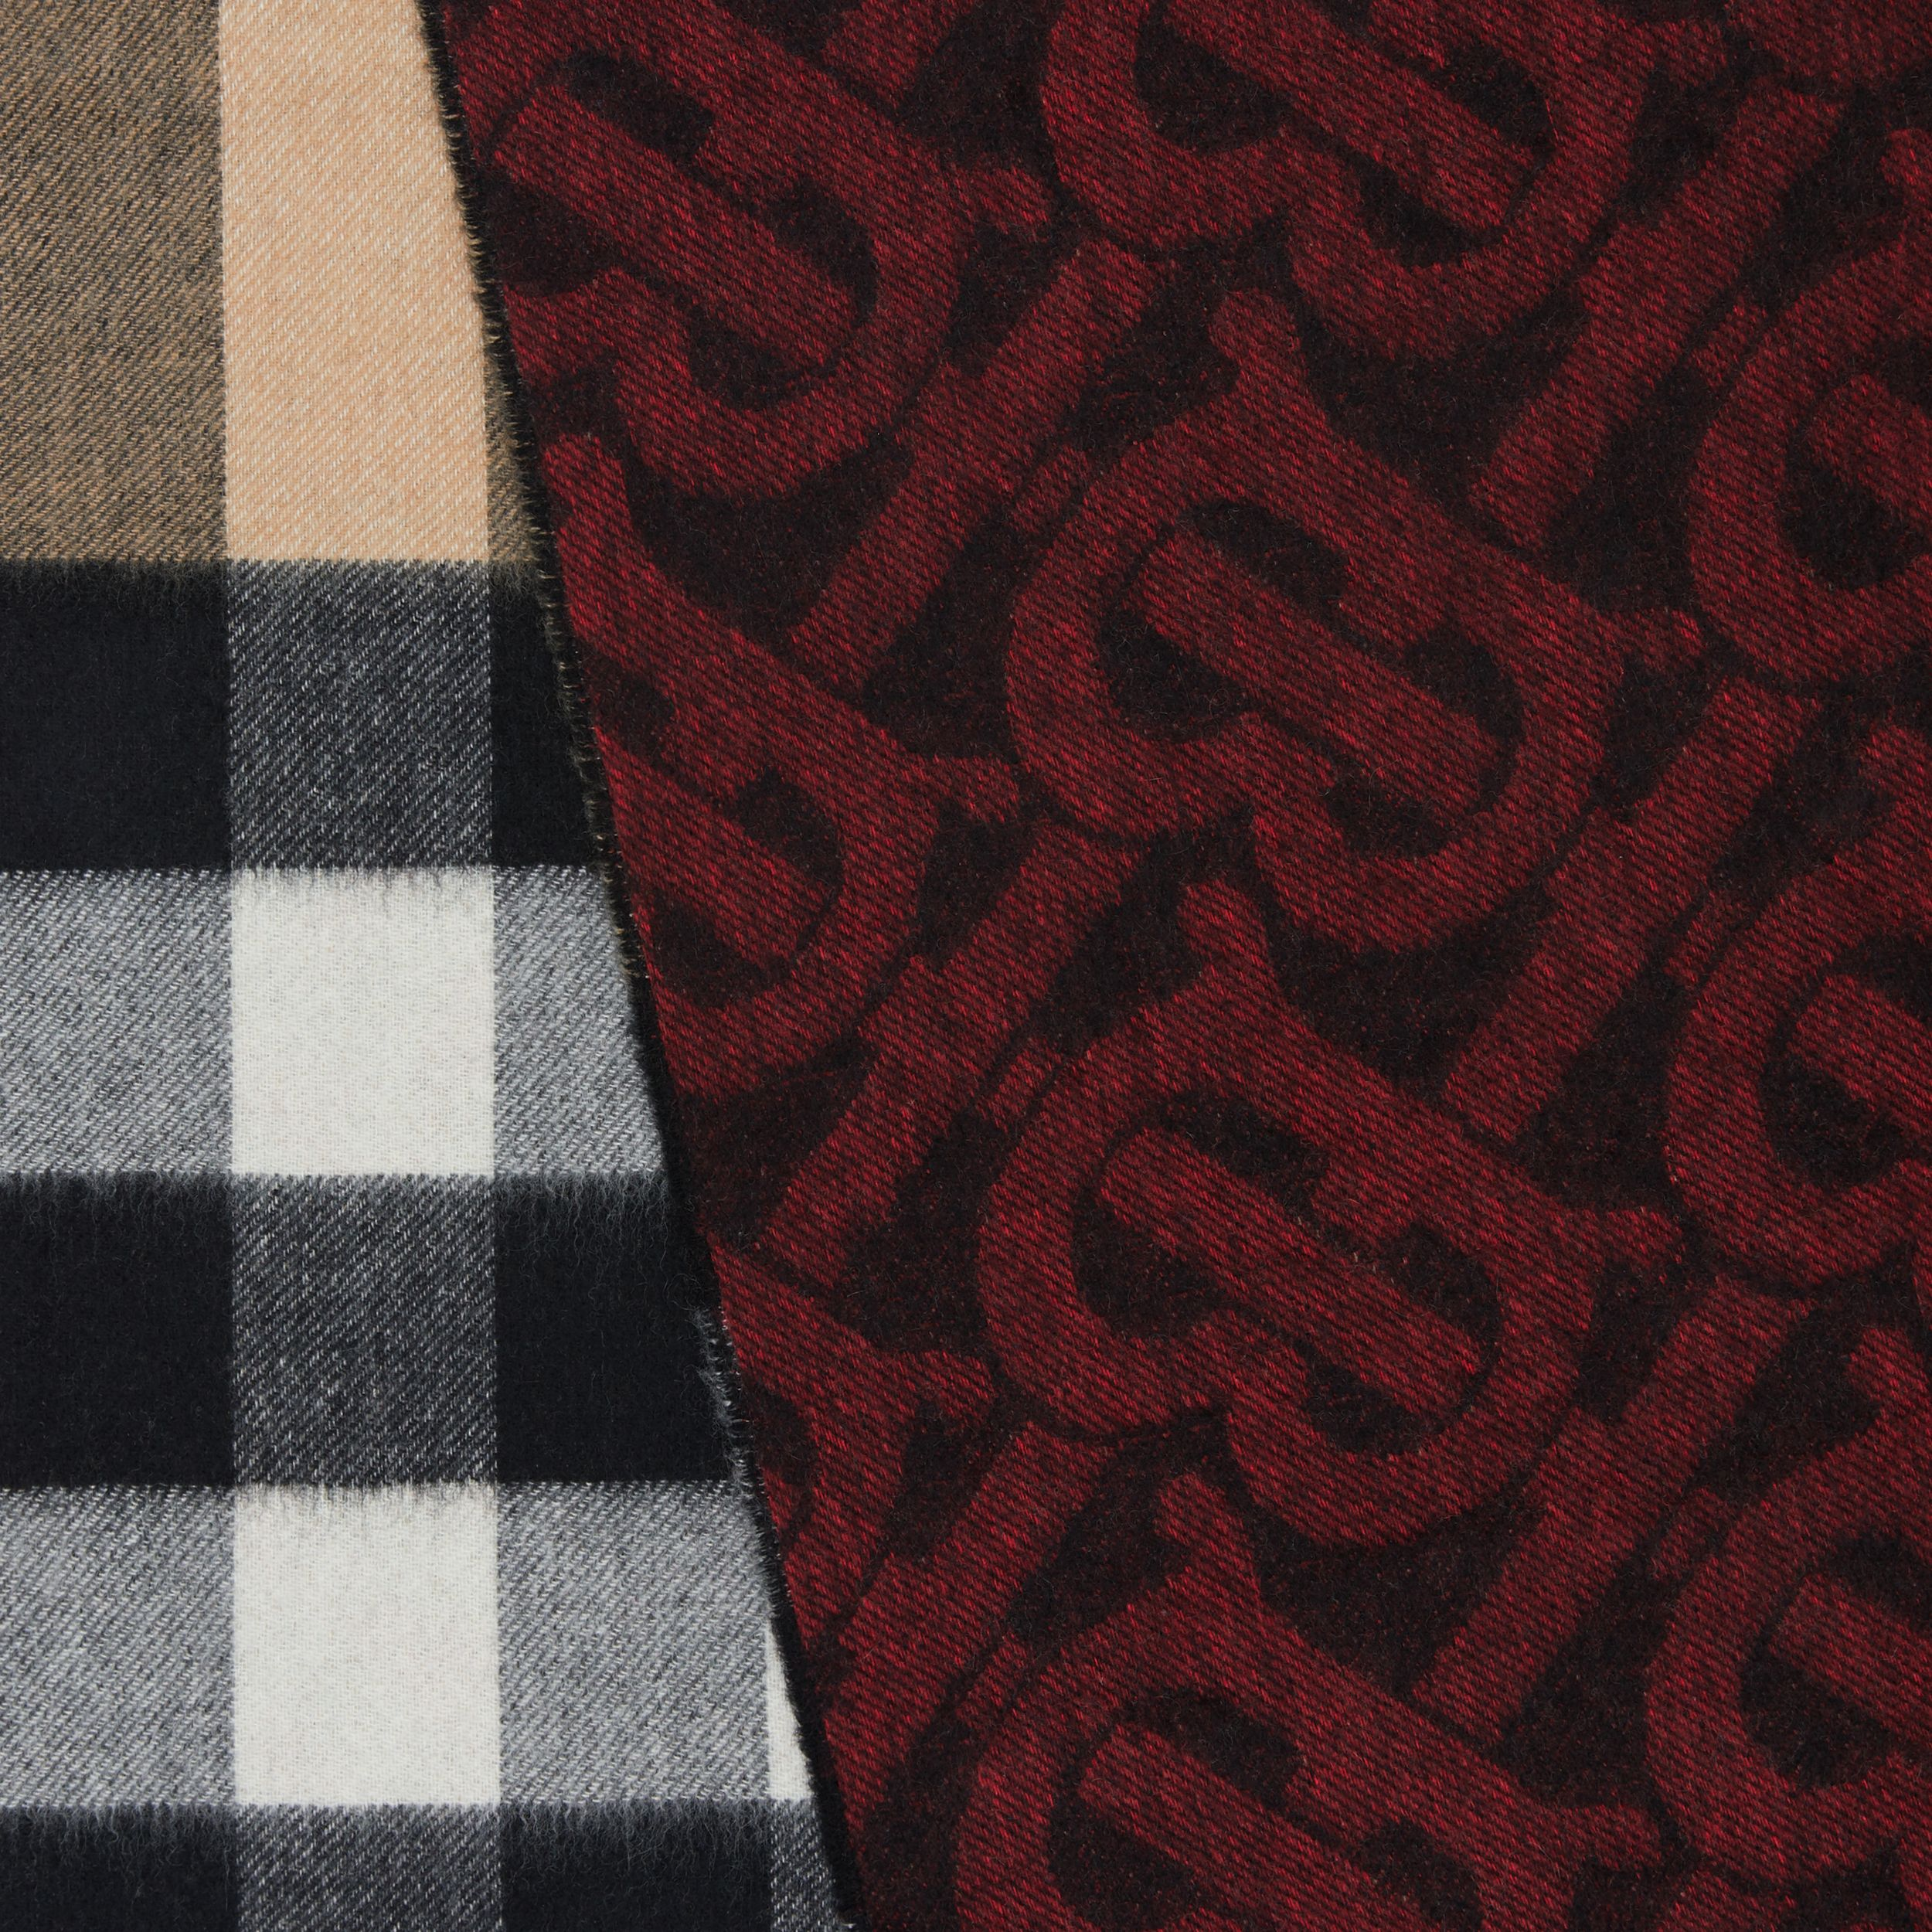 Reversible Check and Monogram Cashmere Scarf in Bright Red | Burberry Australia - 2